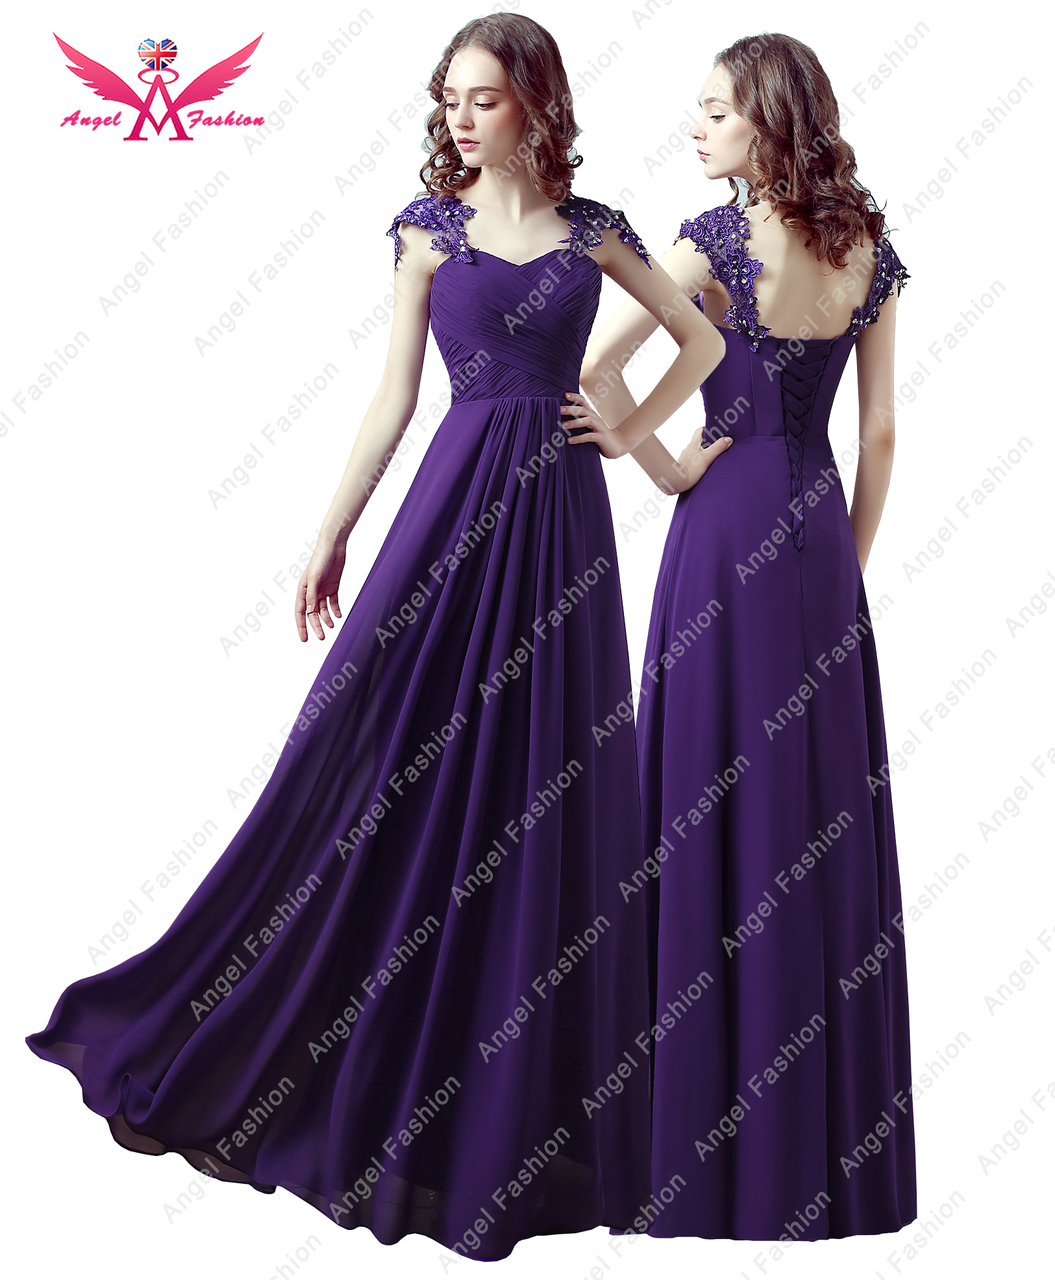 97b51a60c4a Long Maxi Evening Bridesmaid Formal Party Prom Dress Gown - Angel ...